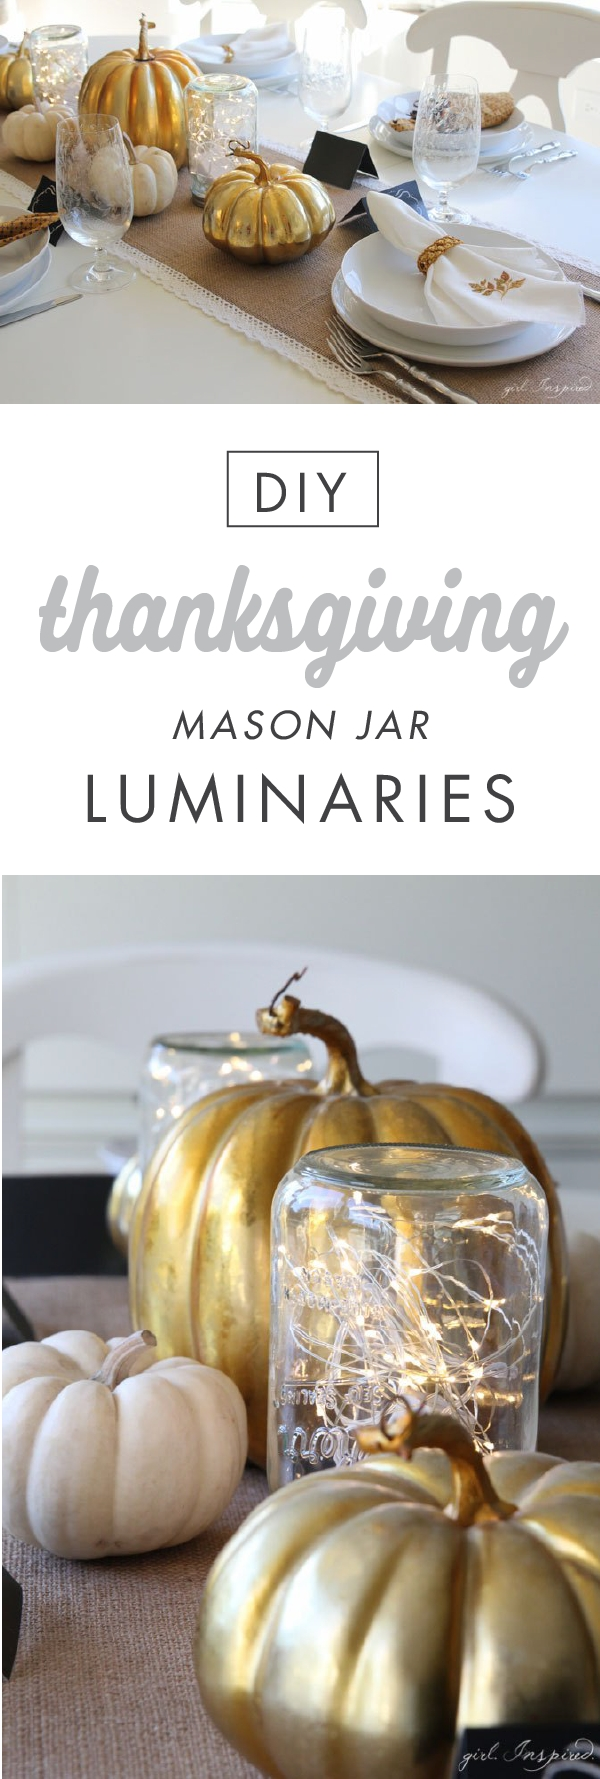 Lovely Turkey Decor For Your Thanksgiving Table Ideas 11